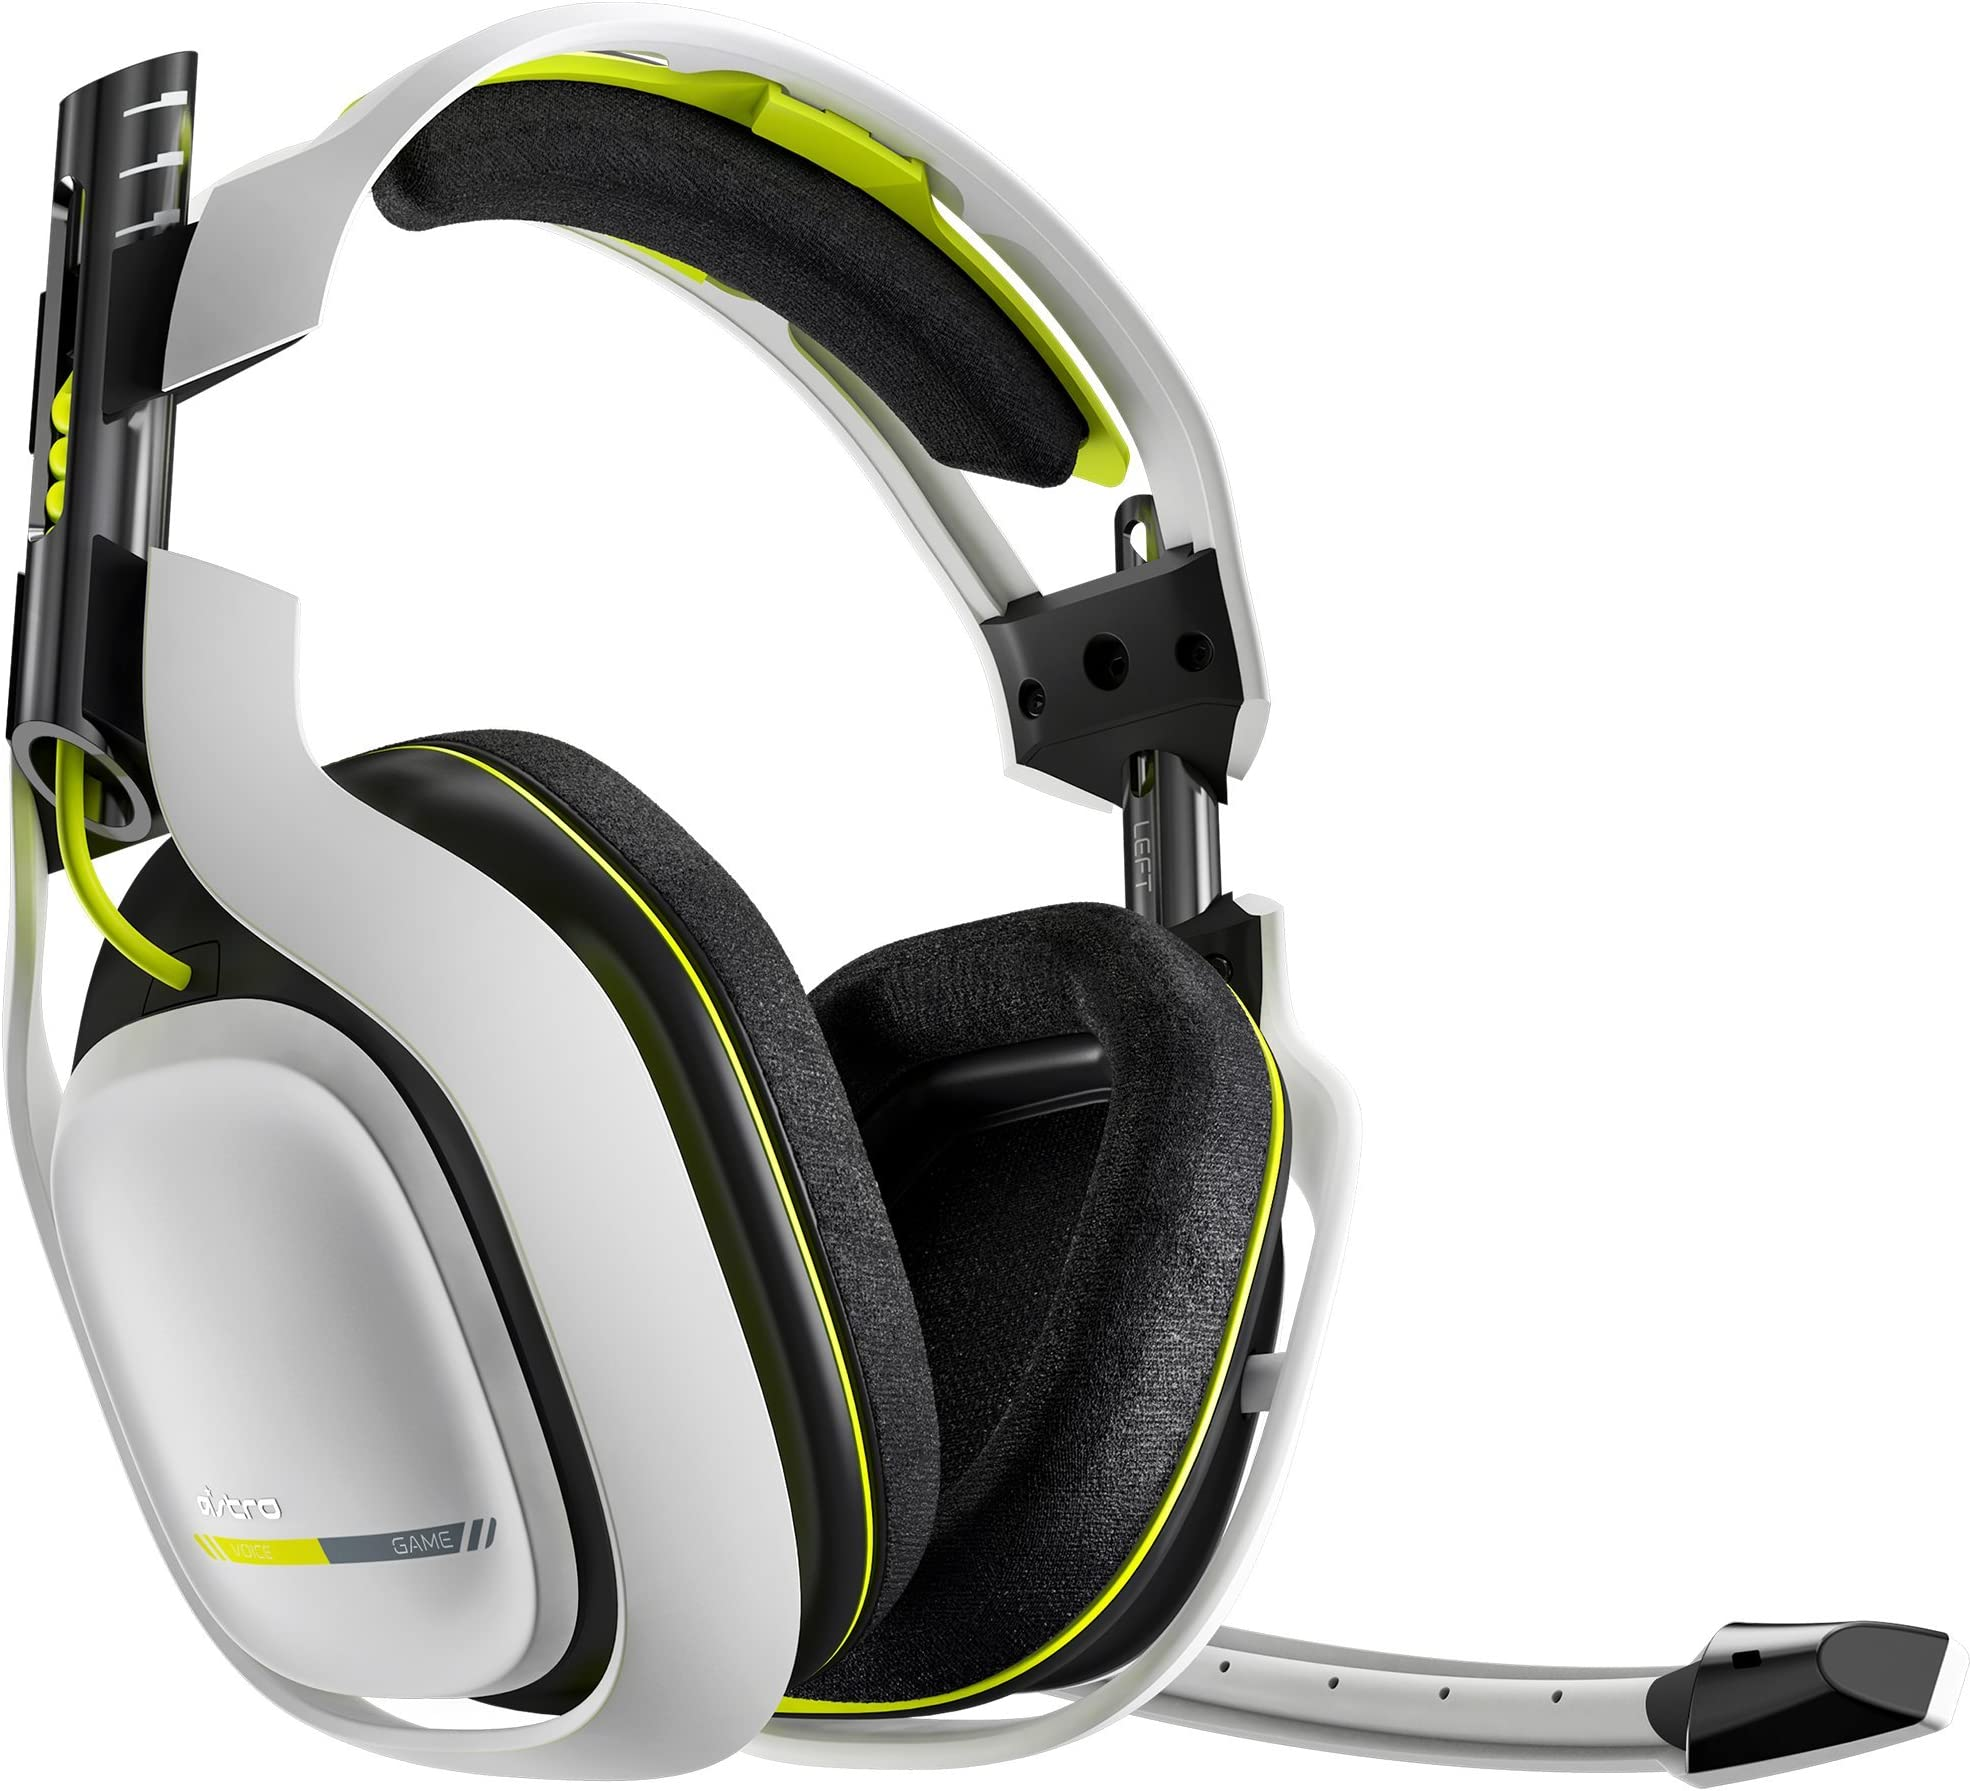 Hook up astro a50 to pc